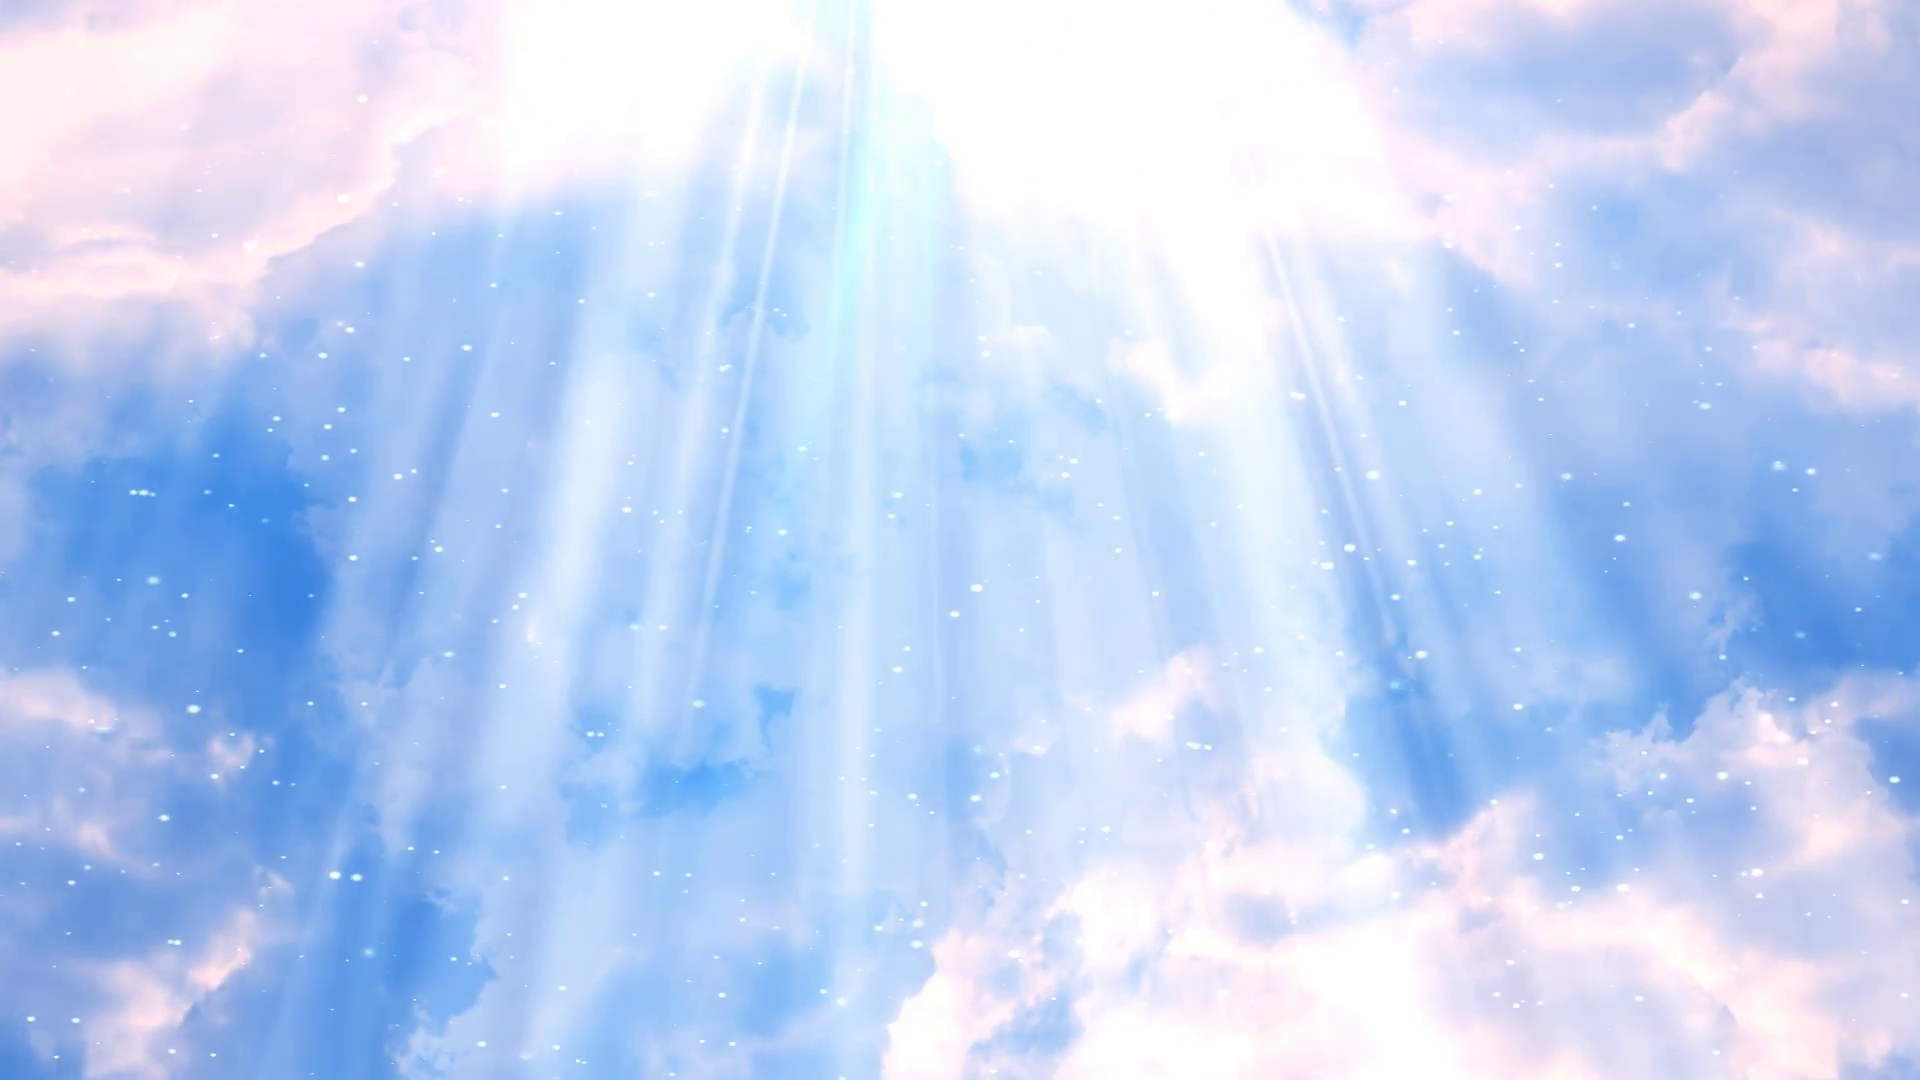 glorious heaven background motion background - videoblocks